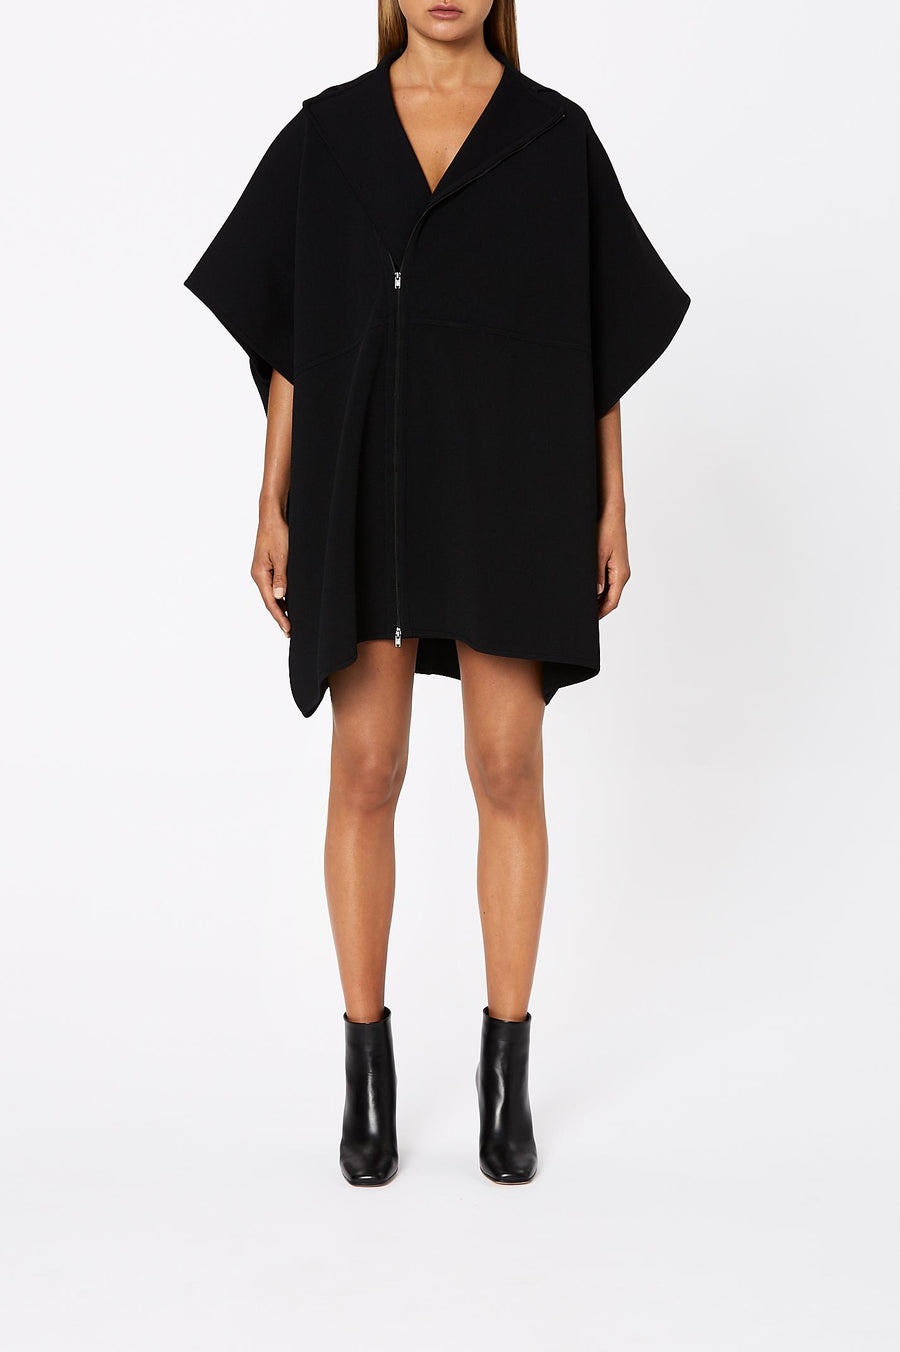 Crepe Knit Dress Cape Black - Scanlan Theodore